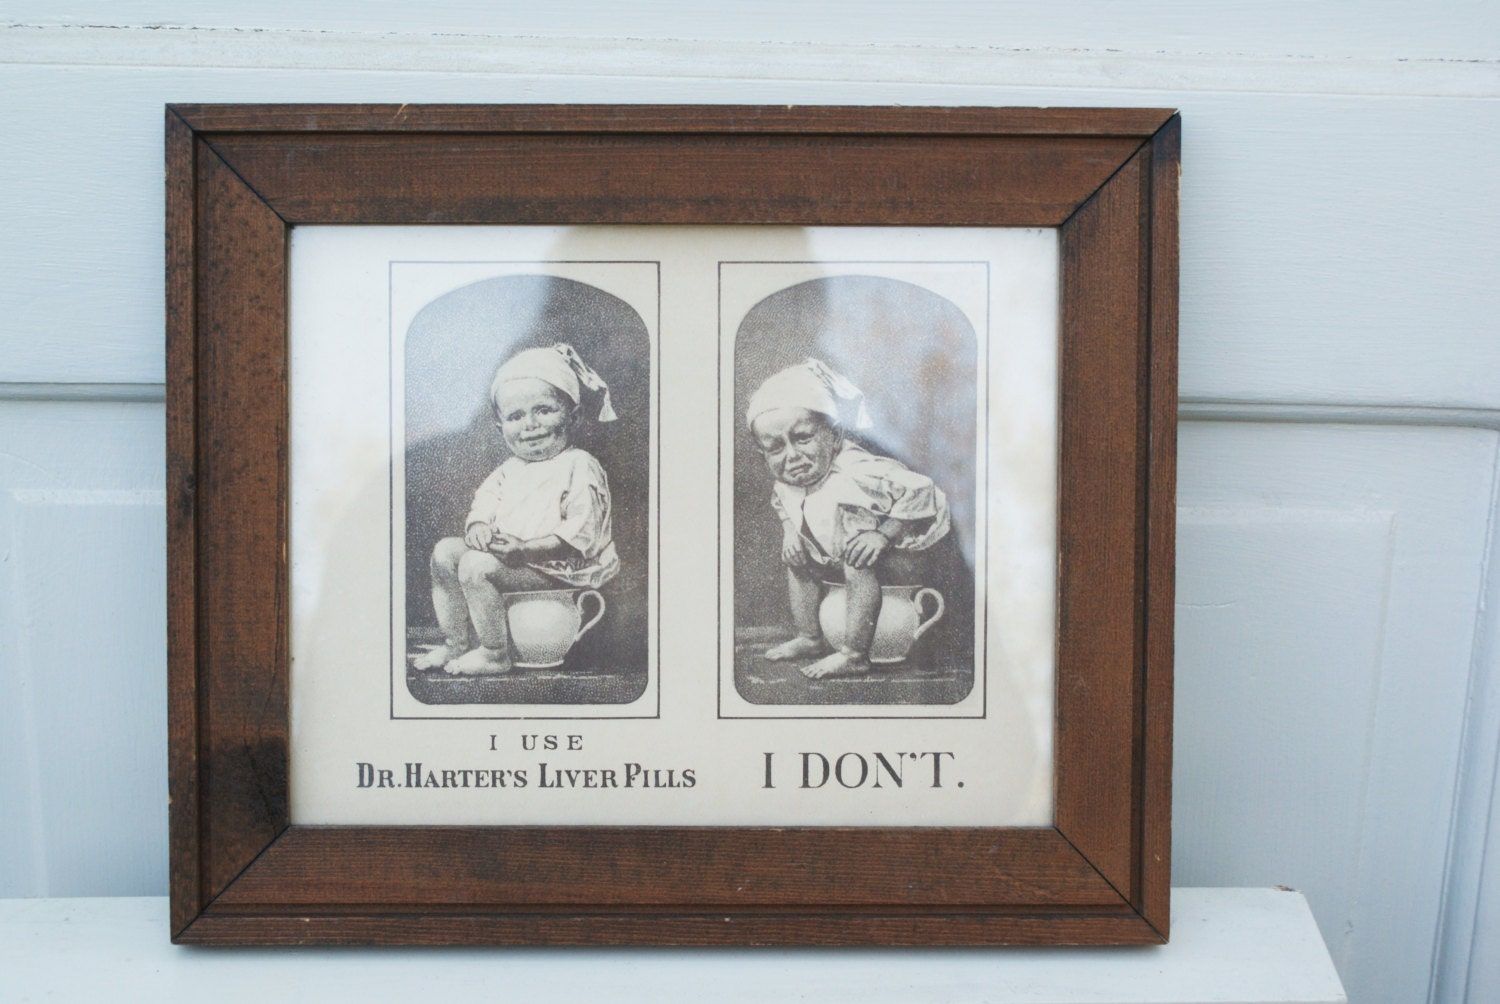 Man Caves Englewood Co : Framed art comical s reproduction bathroom humor